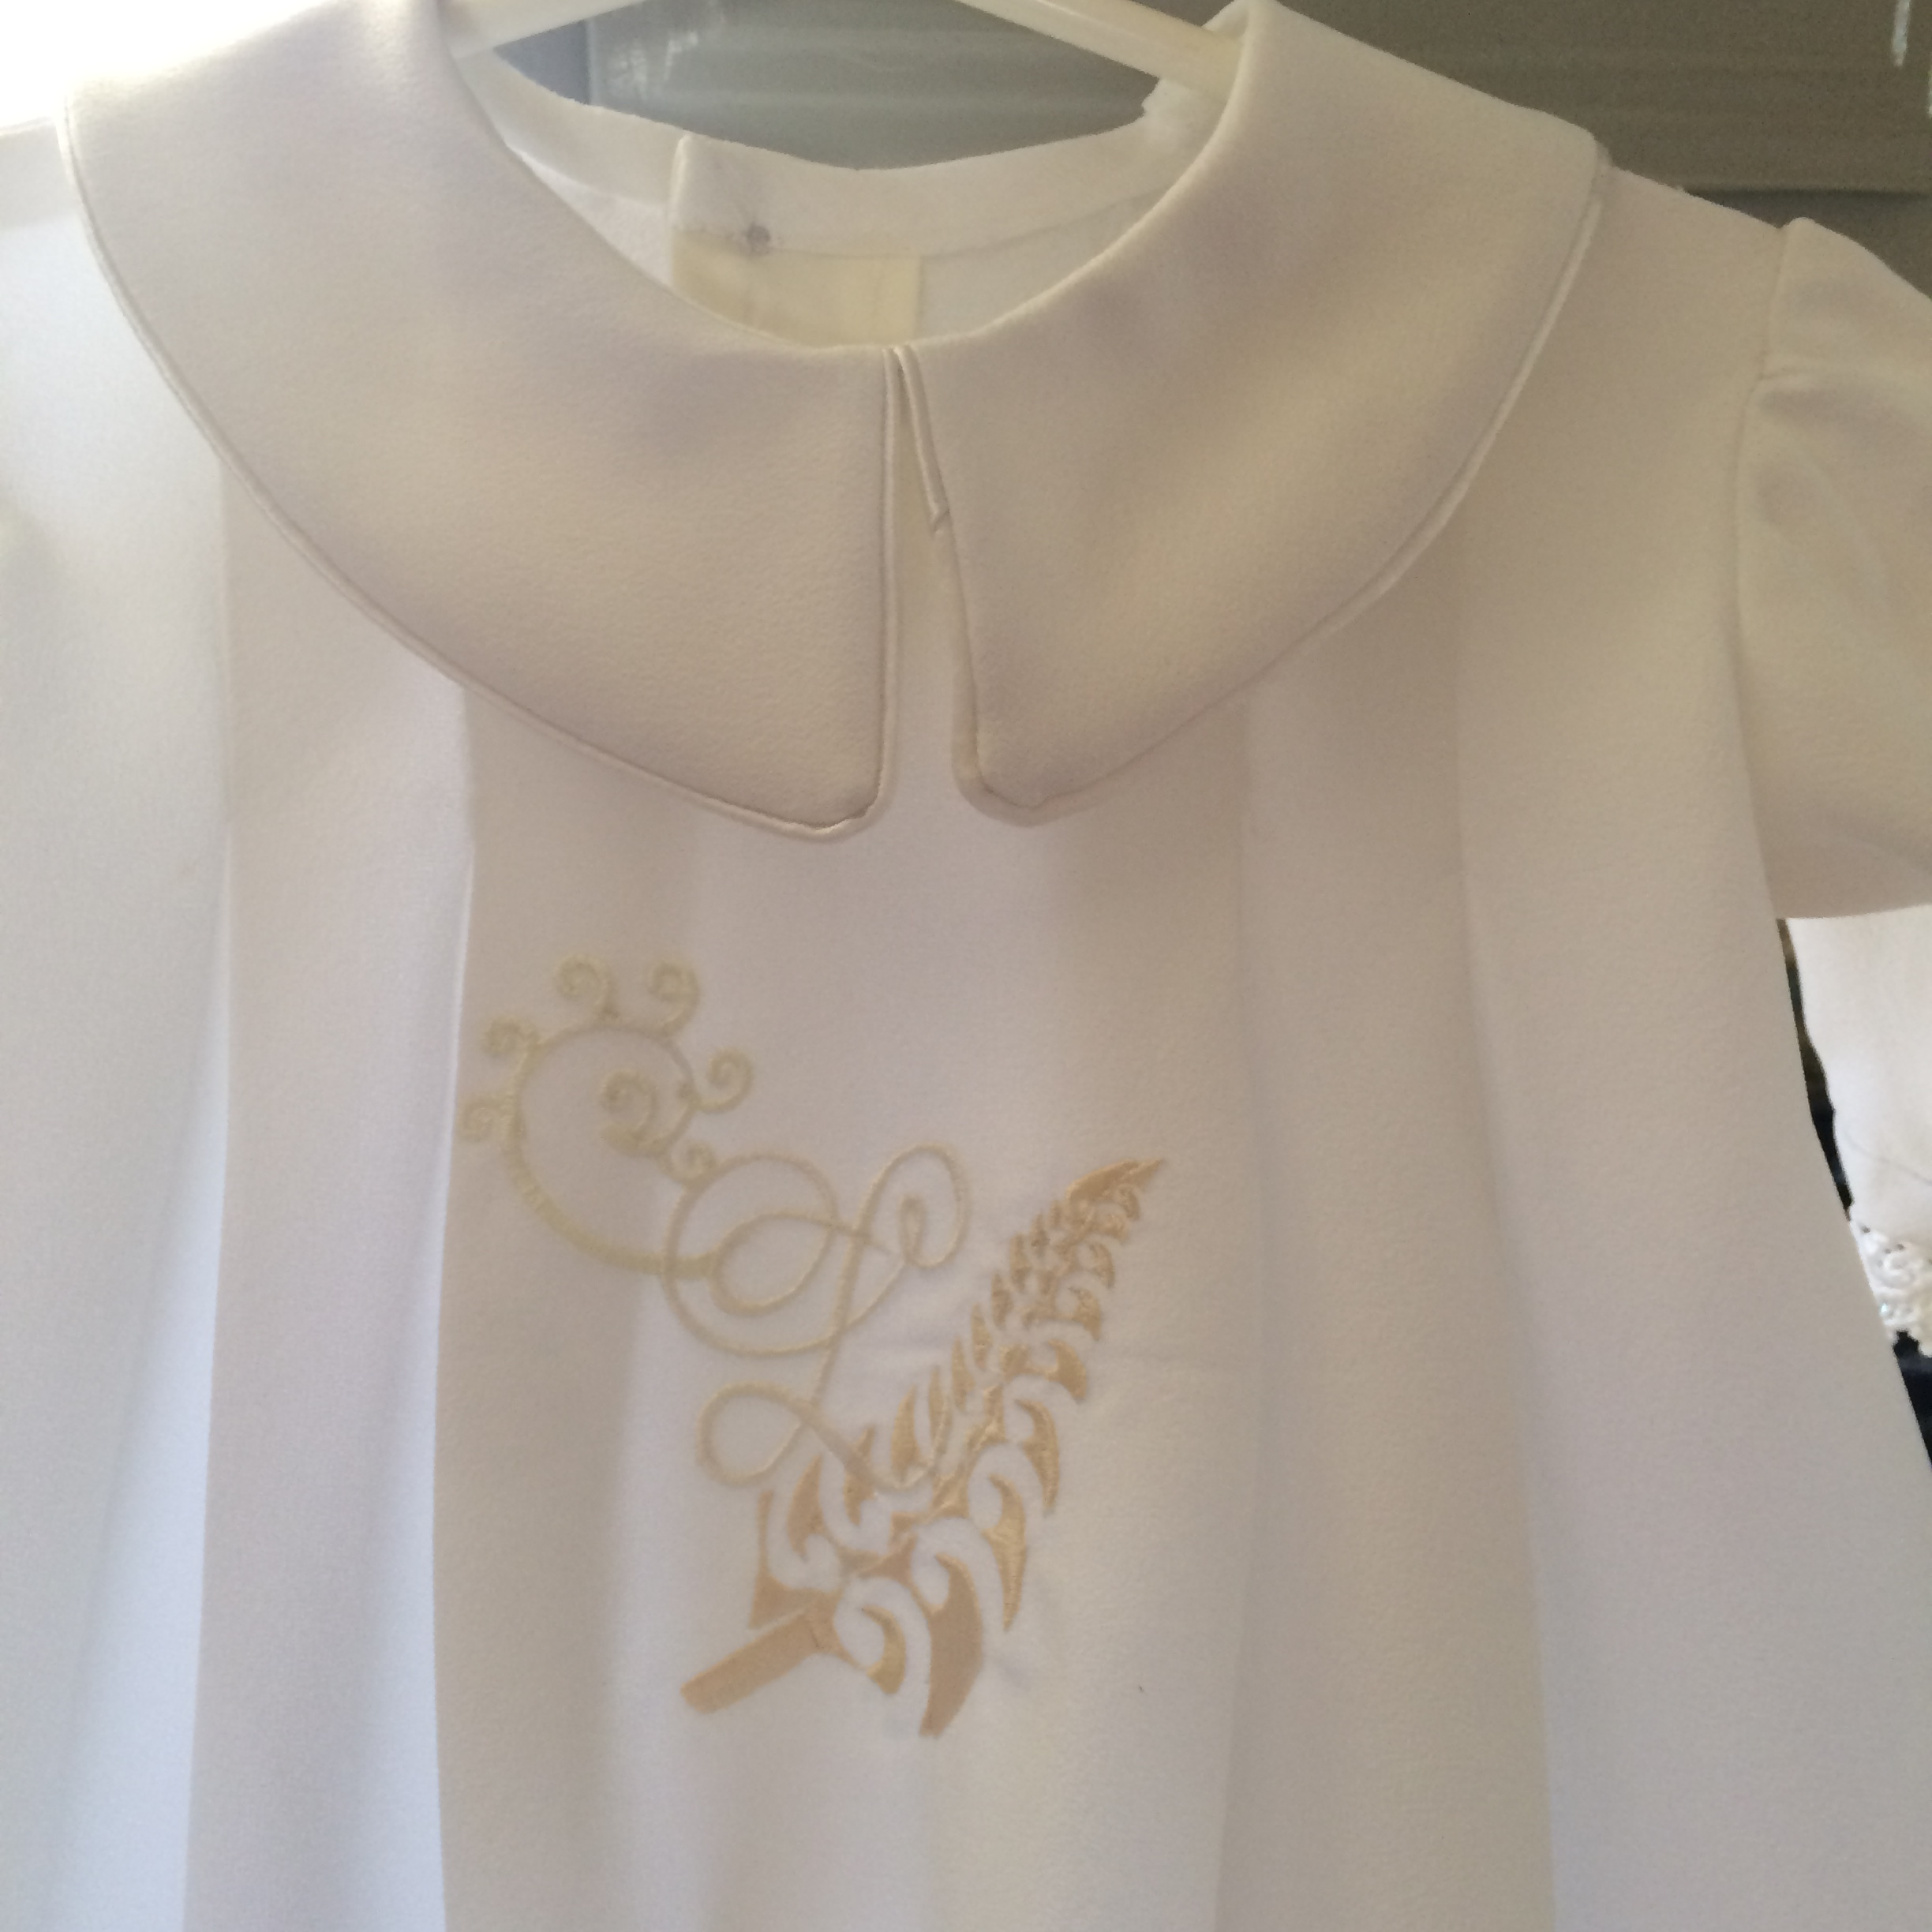 Custom hand drawn embroidery on Christening gown.